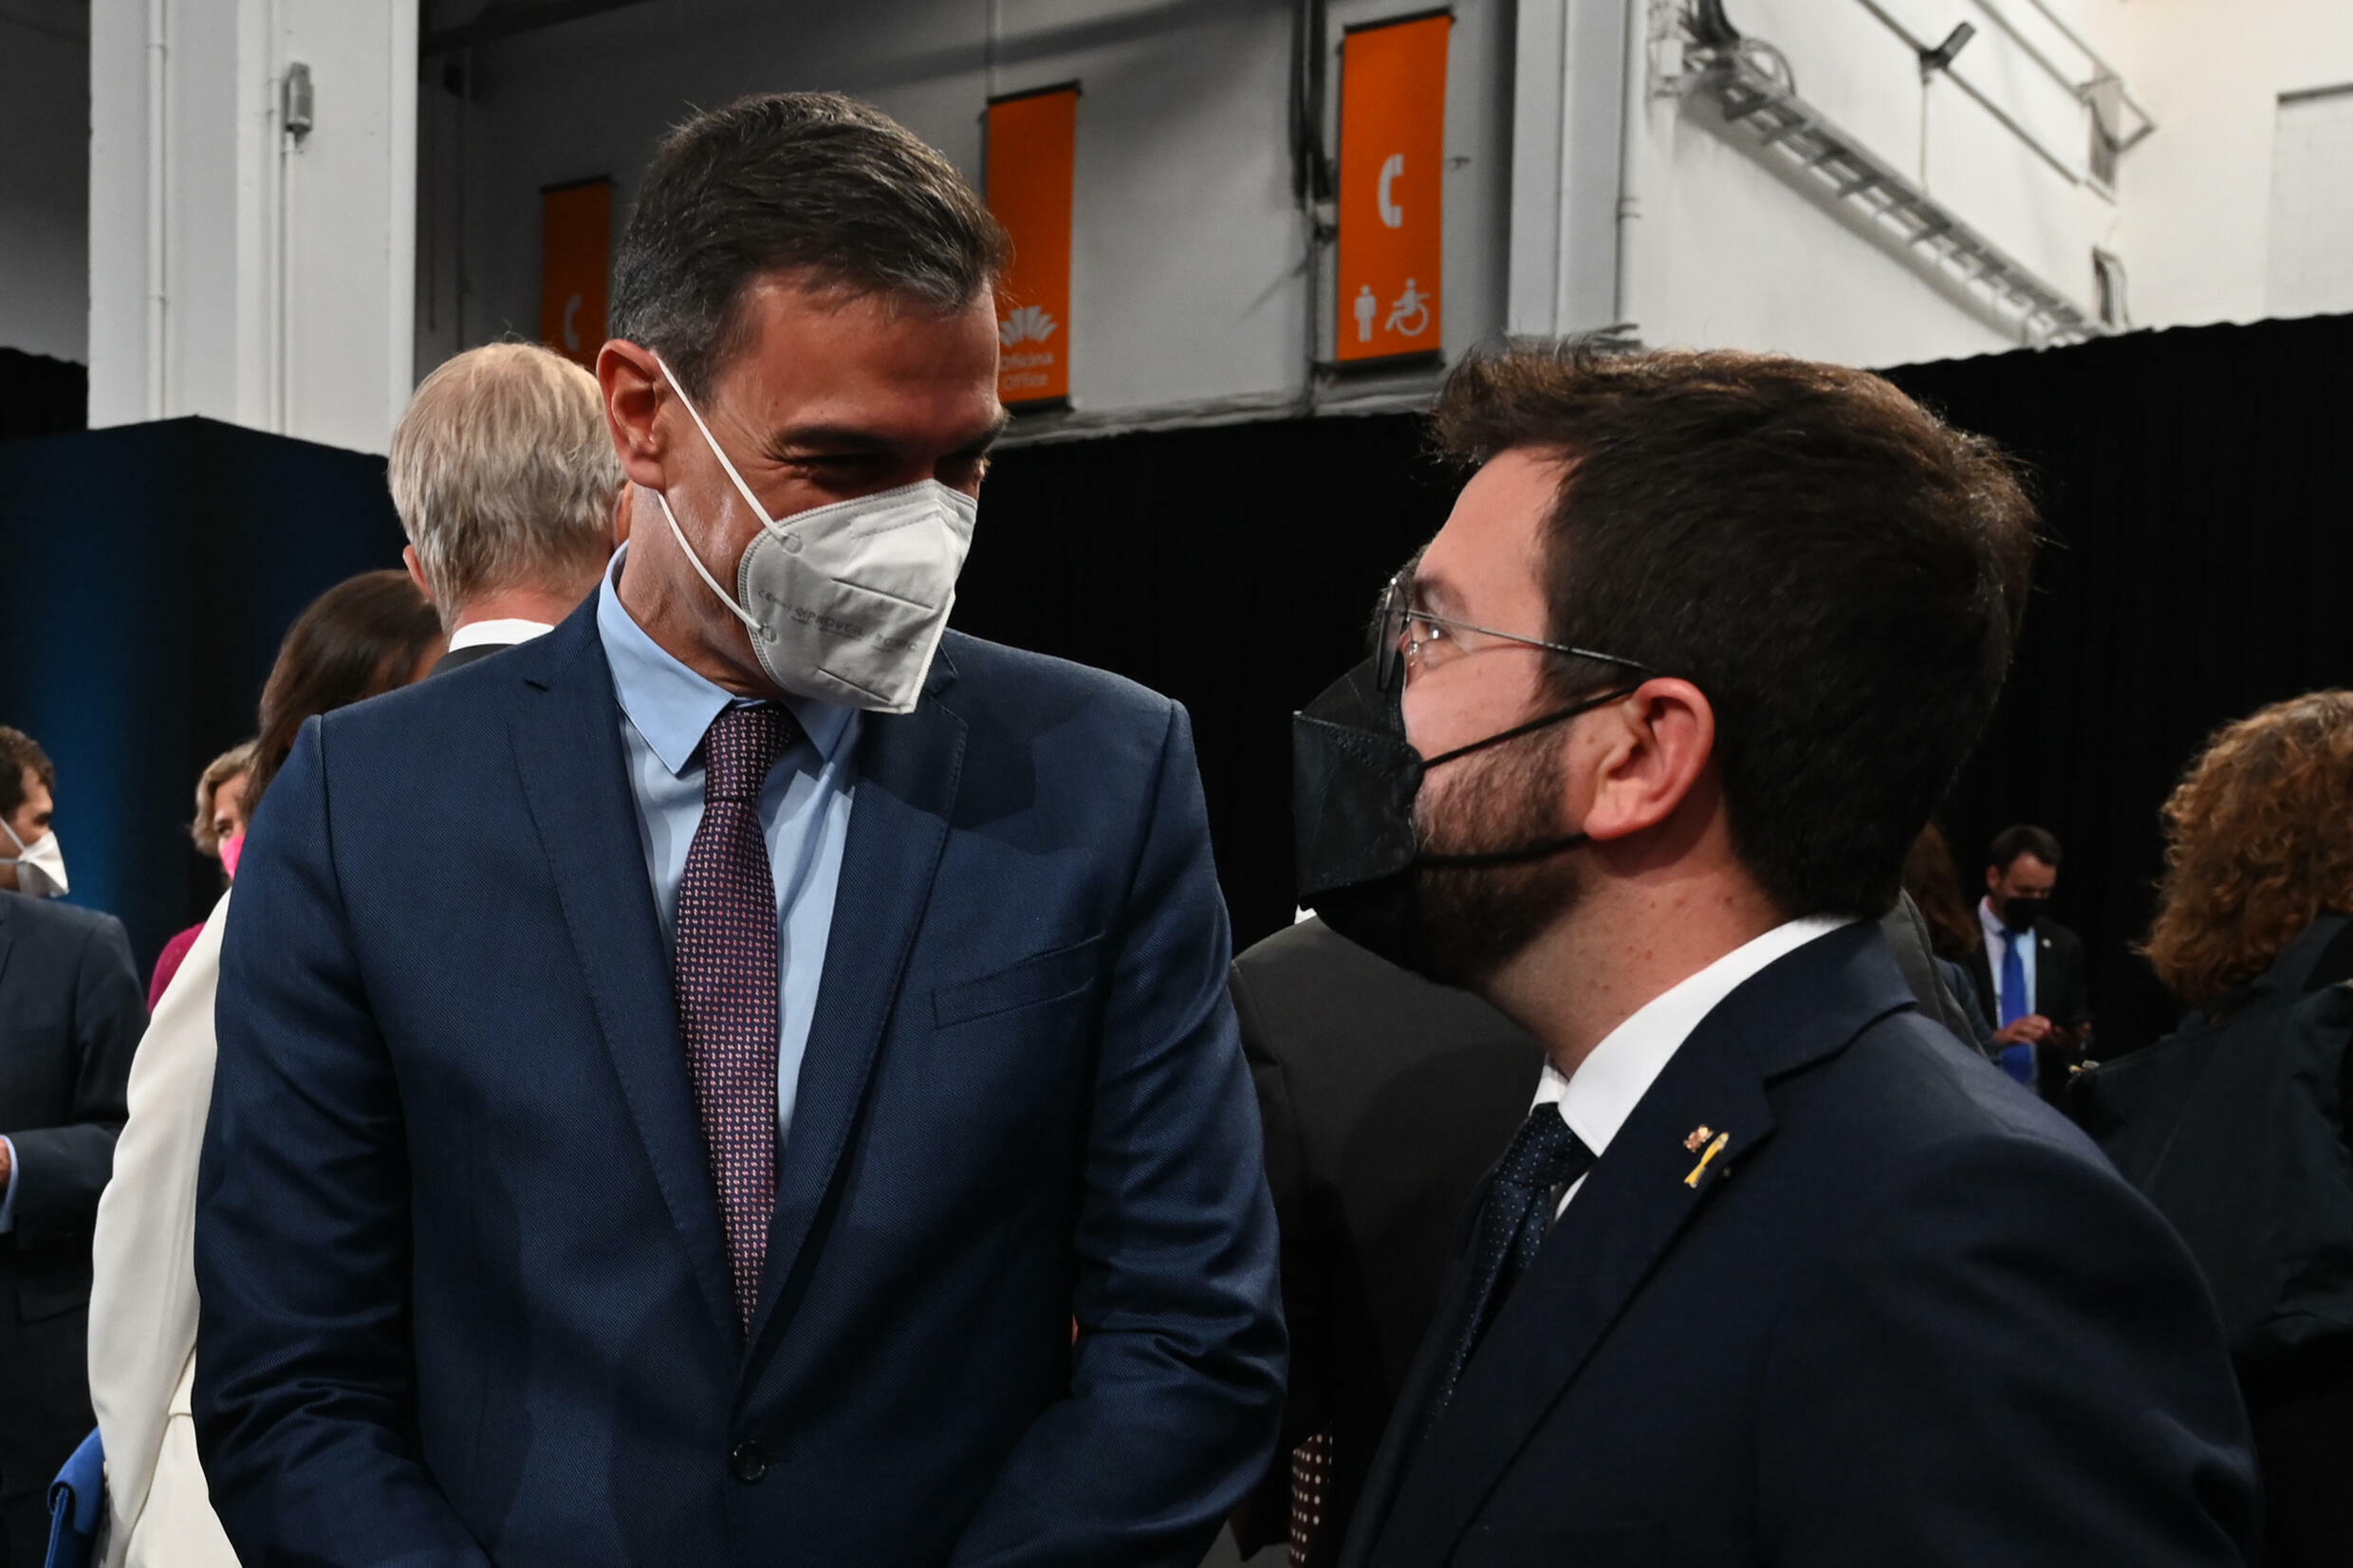 Spanish Prime Minister Pedro Sanchez (l) and Catalan leader Pere Aragones meeting last July. They will hold fresh talks on Wednesday but expectations are low